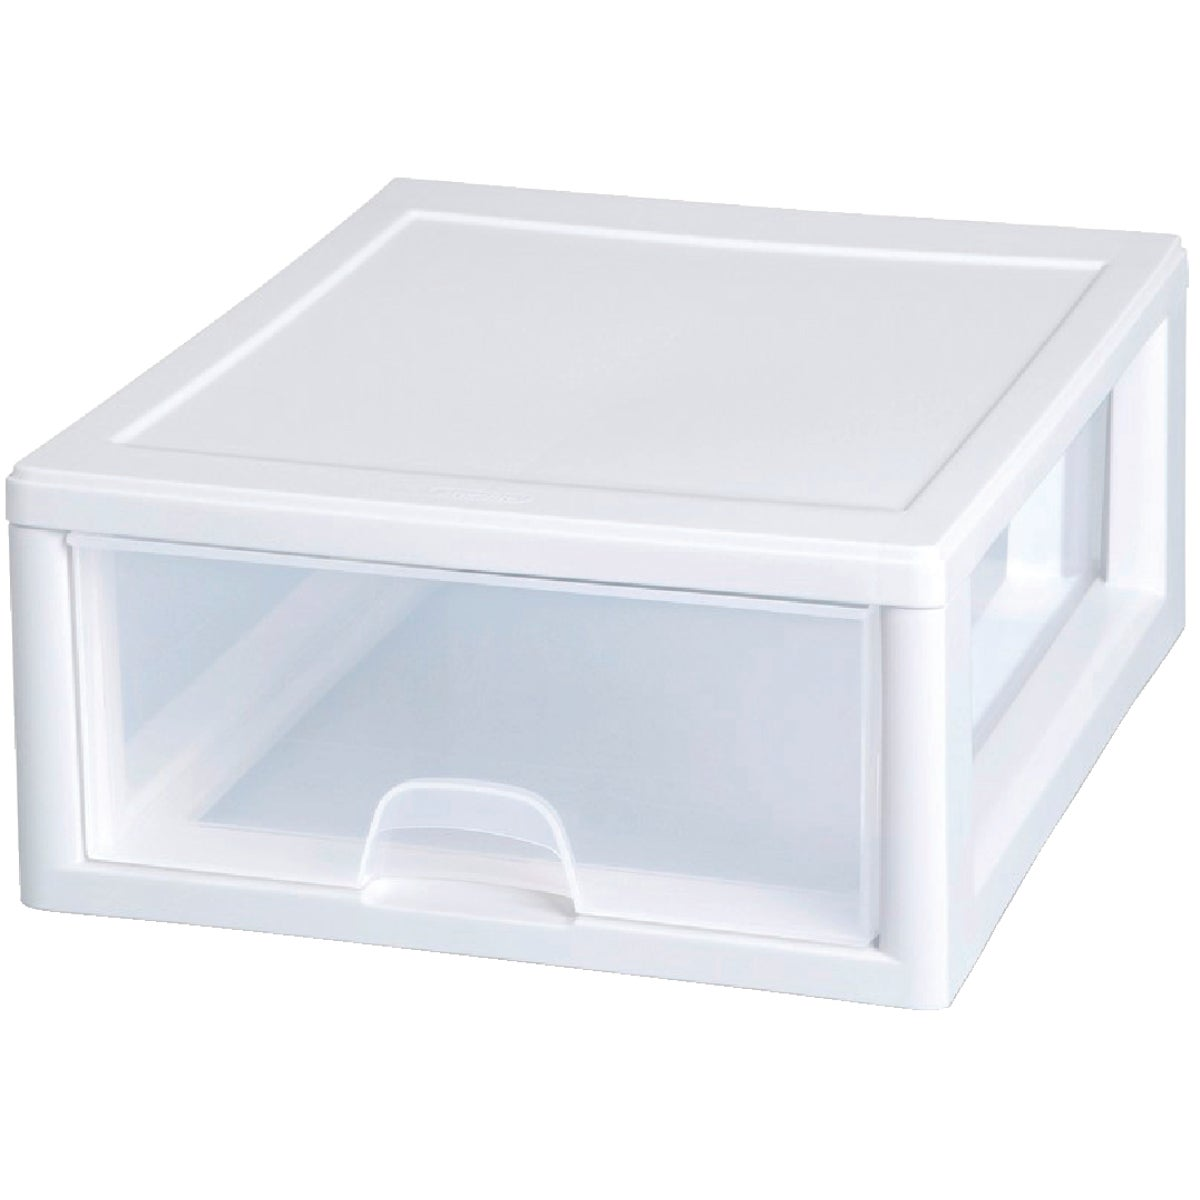 16QT STORAGE DRAWER - 23018006 by Sterilite Corp